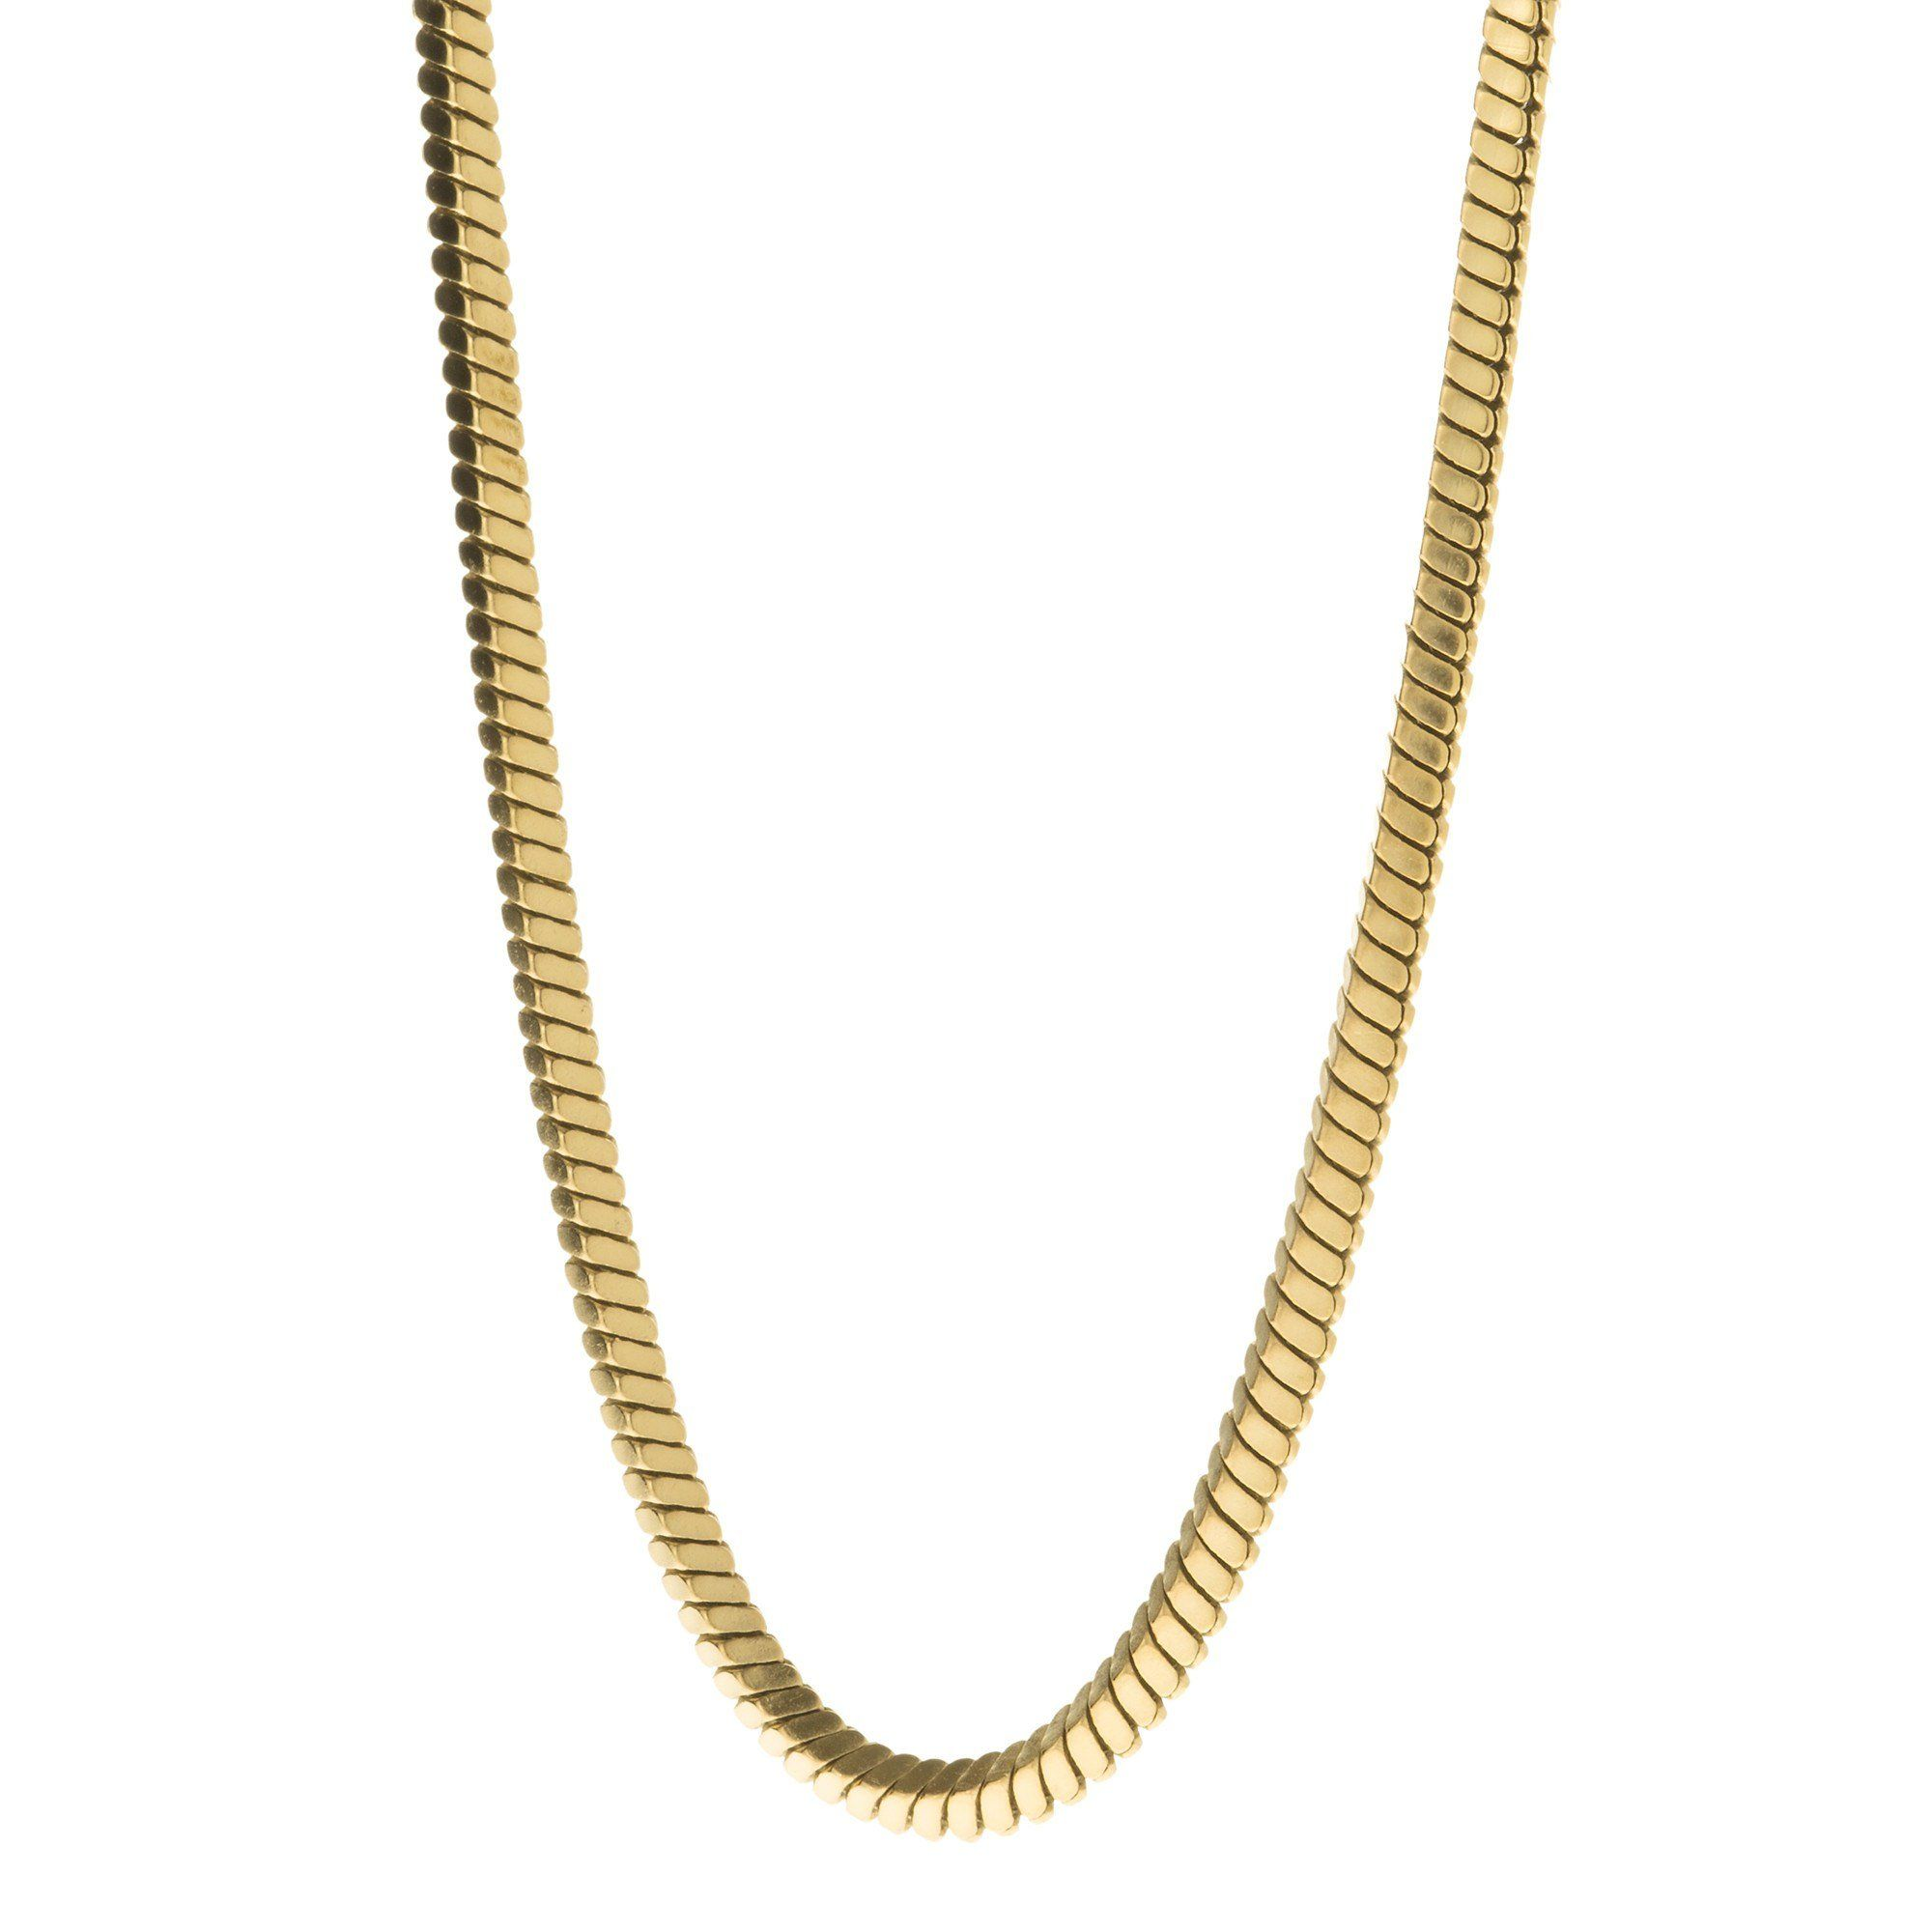 Chains For Men Gold Chain Designs For Mens Latest Gold Chain Designs With Price And Weight Gold Chain Gold Chains For Men Gold Snake Chain Mens Chain Necklace